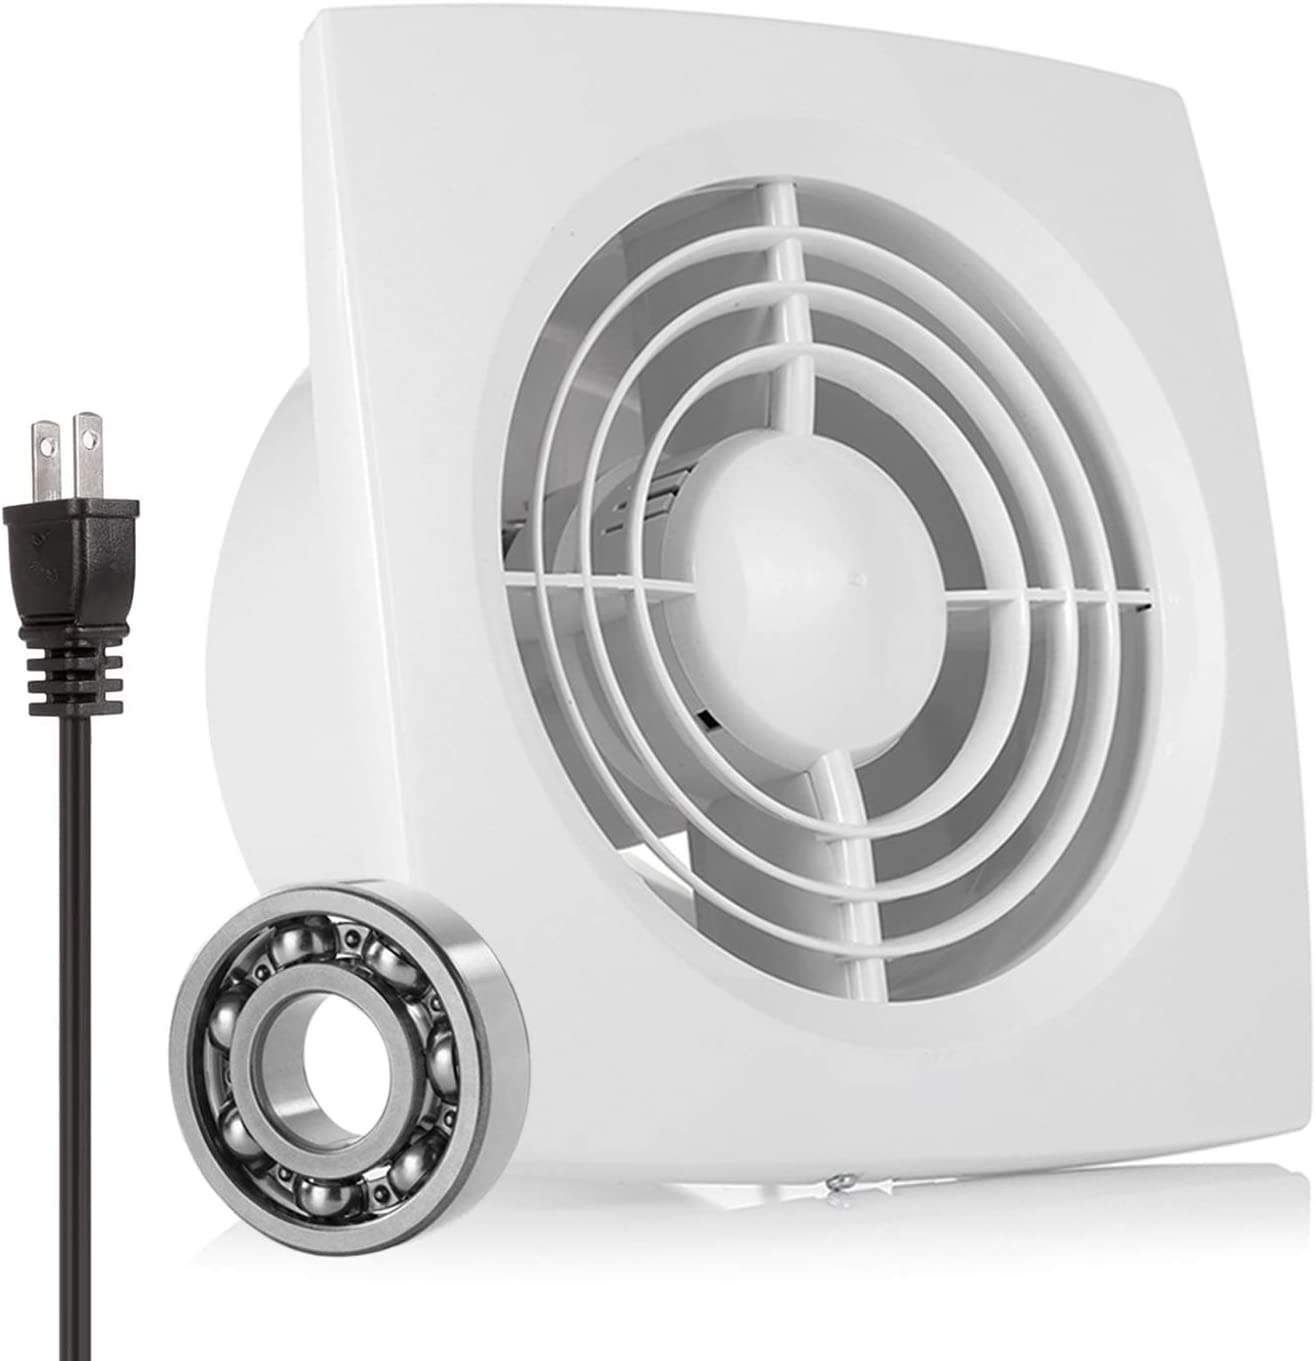 Exhaust half Fan Extractor Low price HG POWER Ultra Inch 6 Silent Home Ventila